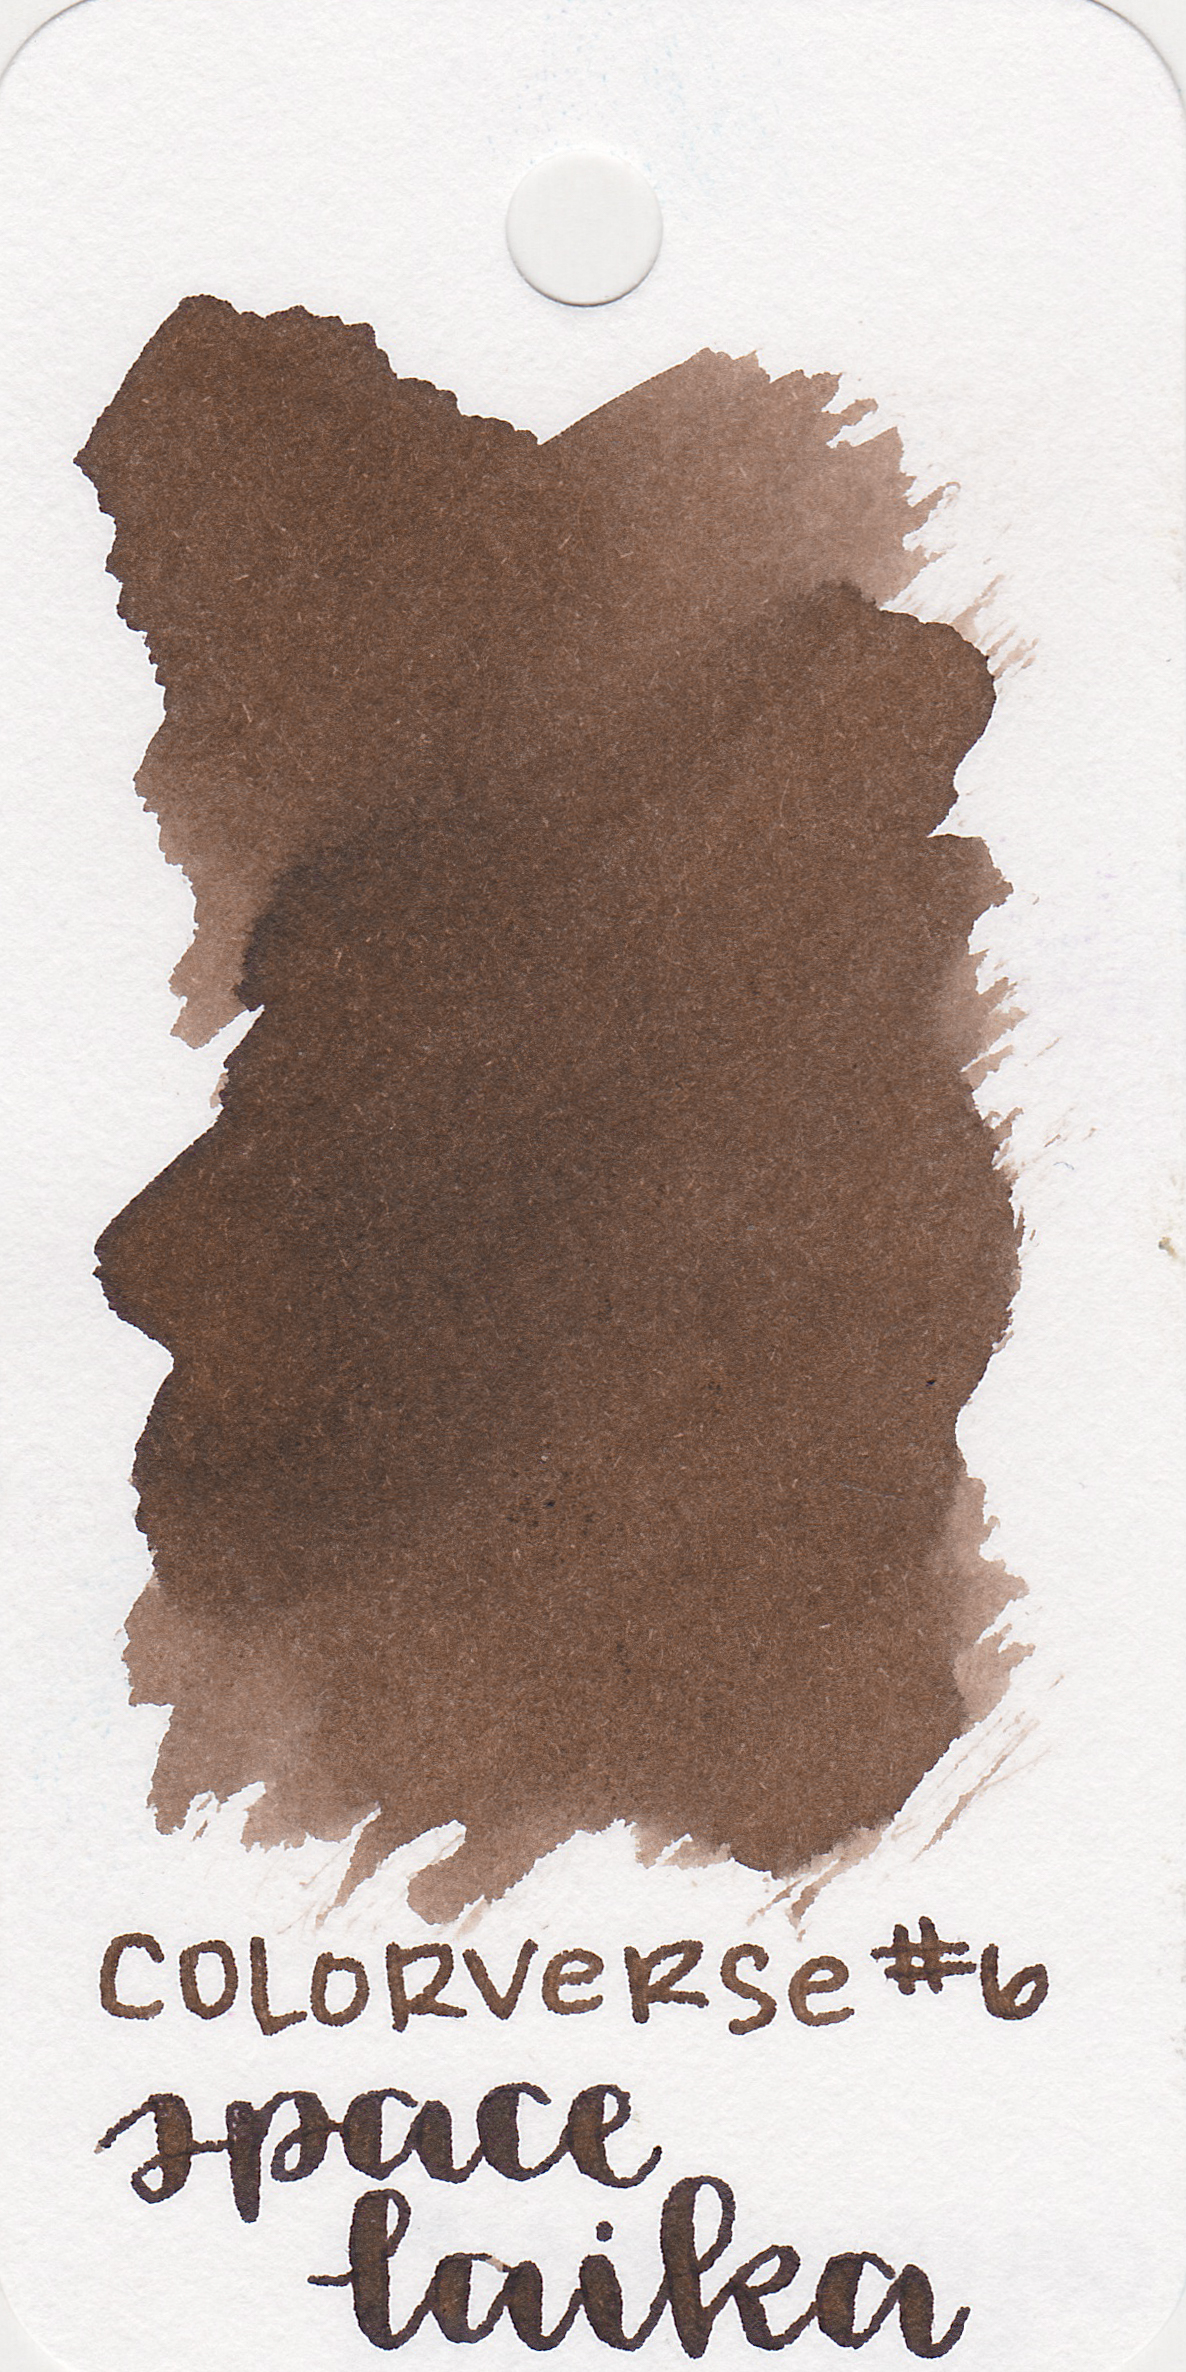 The color: - Space Laika is a nice cool chocolate brown.